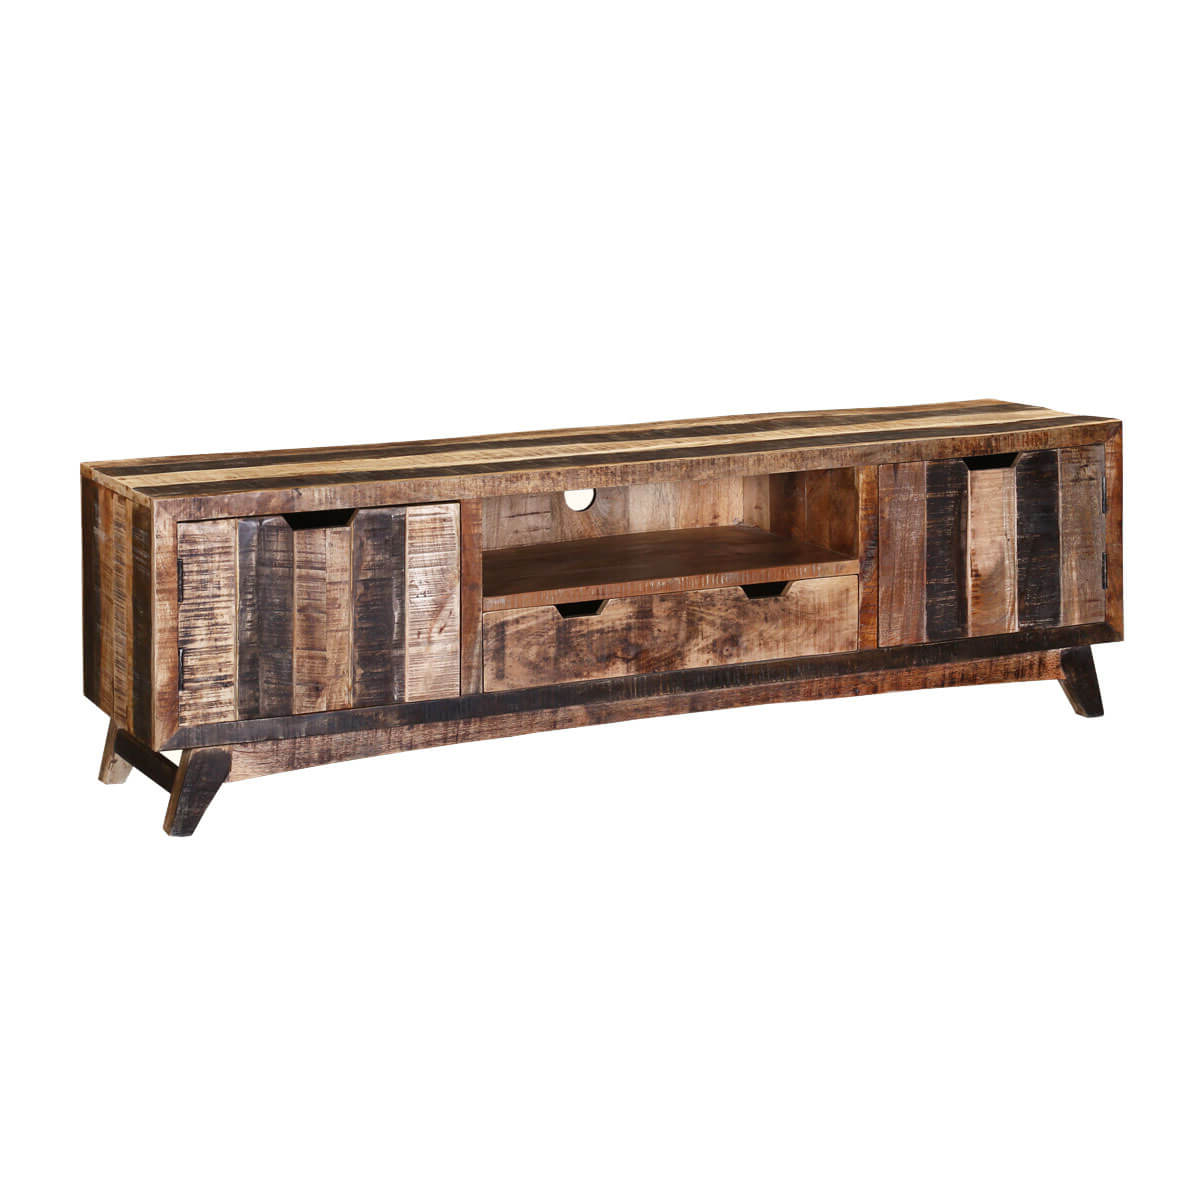 Mango Wood Tv Cabinets Throughout Fashionable Boulder Handcrafted 2 Drawer Rustic Mango Wood Tv Stand Media Console (View 9 of 20)